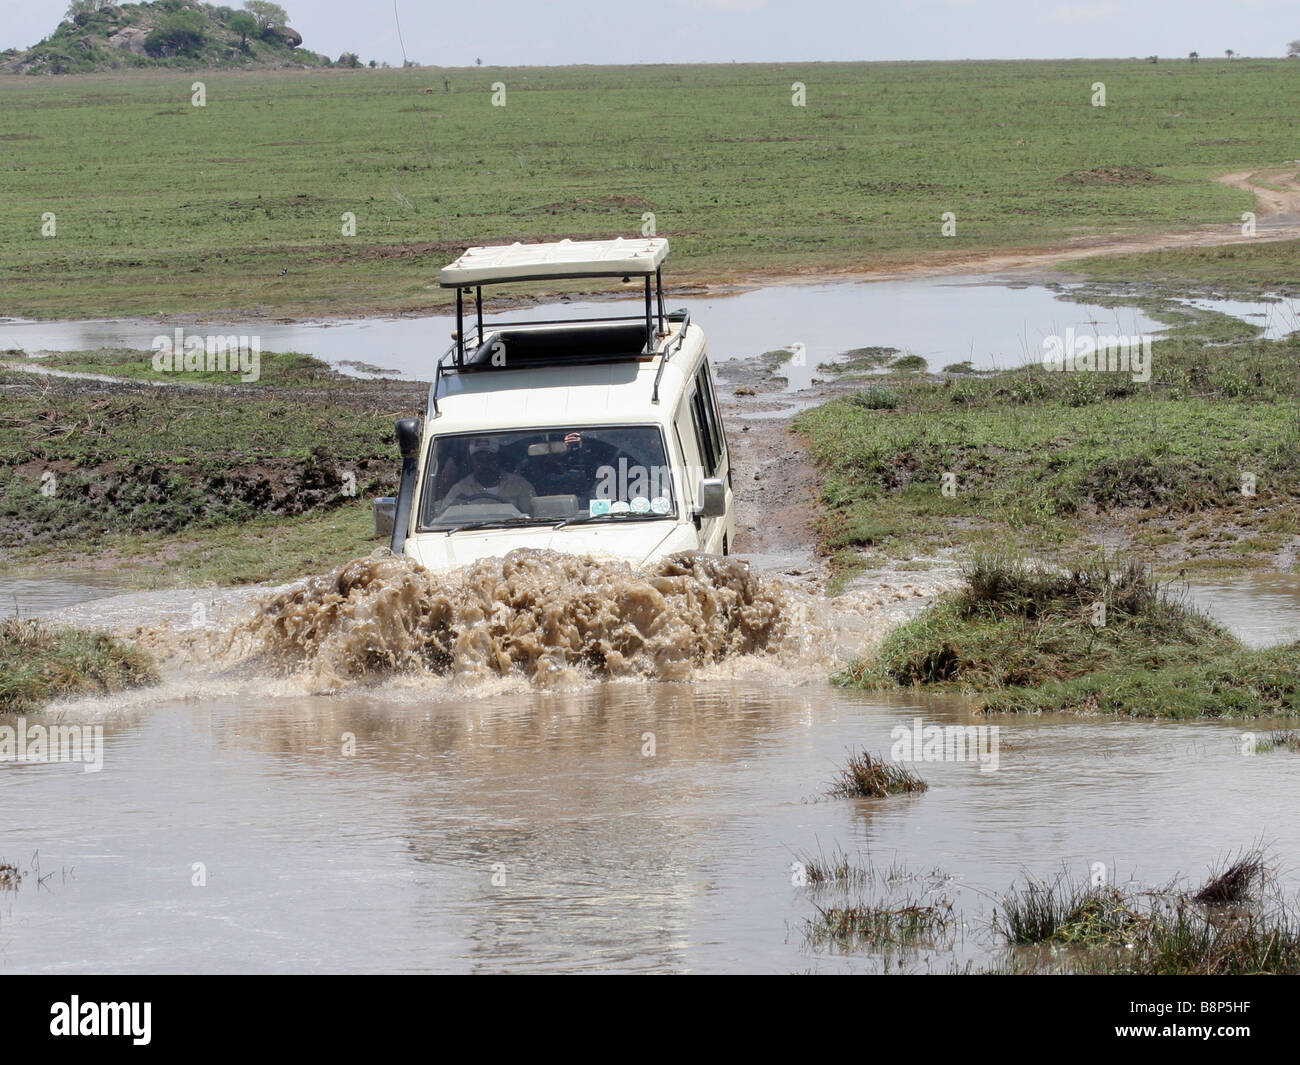 Africa Tanzania Serengeti National Park Safari tourists in an open top land rover crossing a water barrier - Stock Image